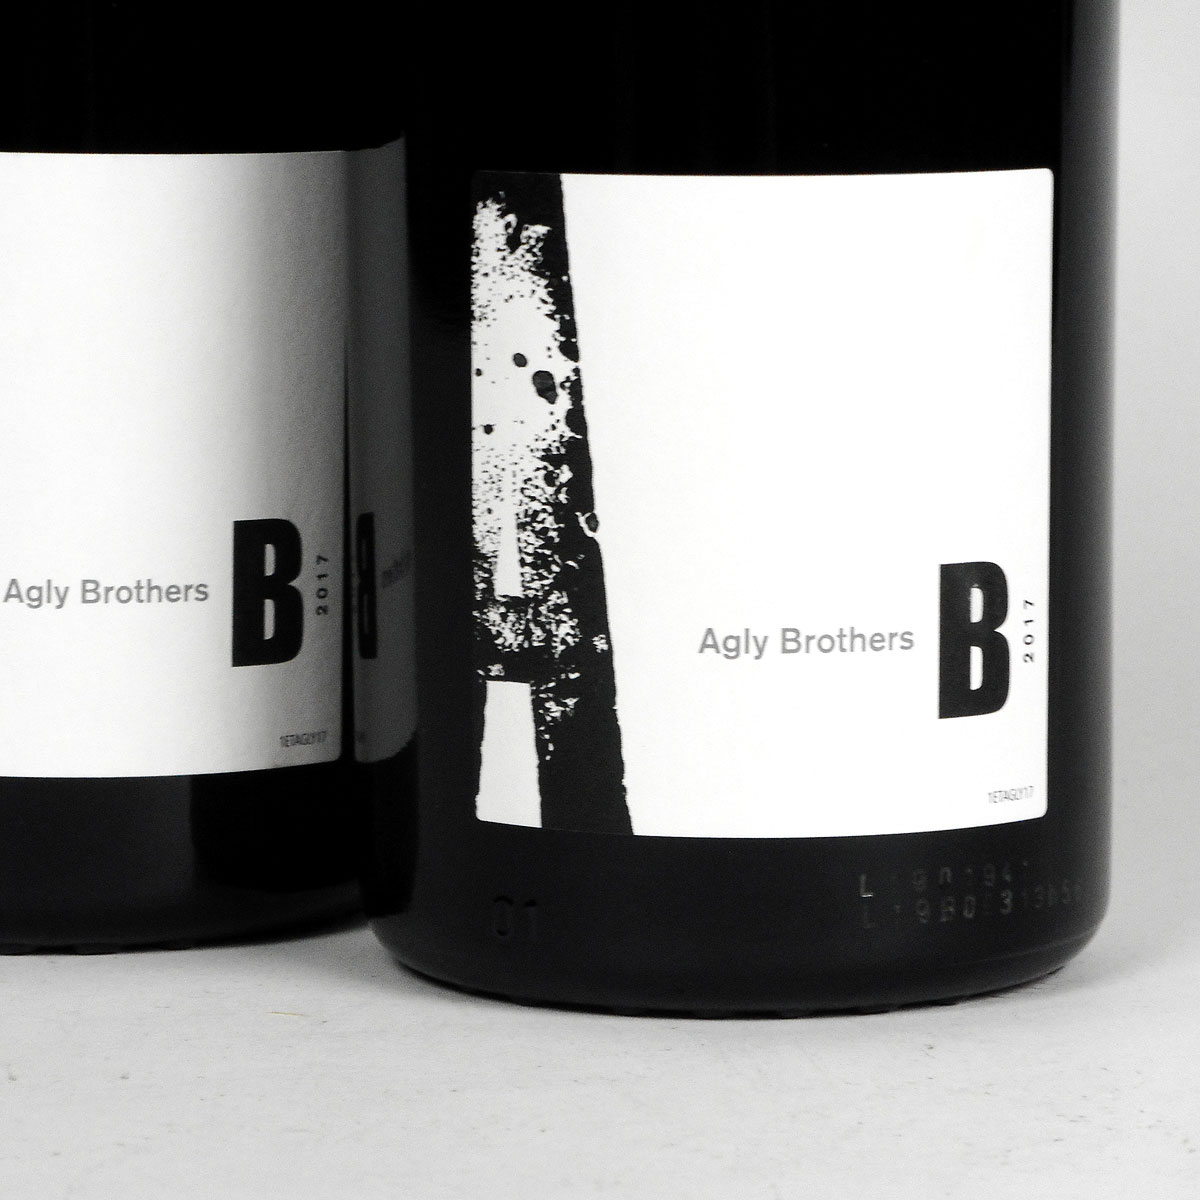 Côtes du Roussillon: Agly Brothers 2017